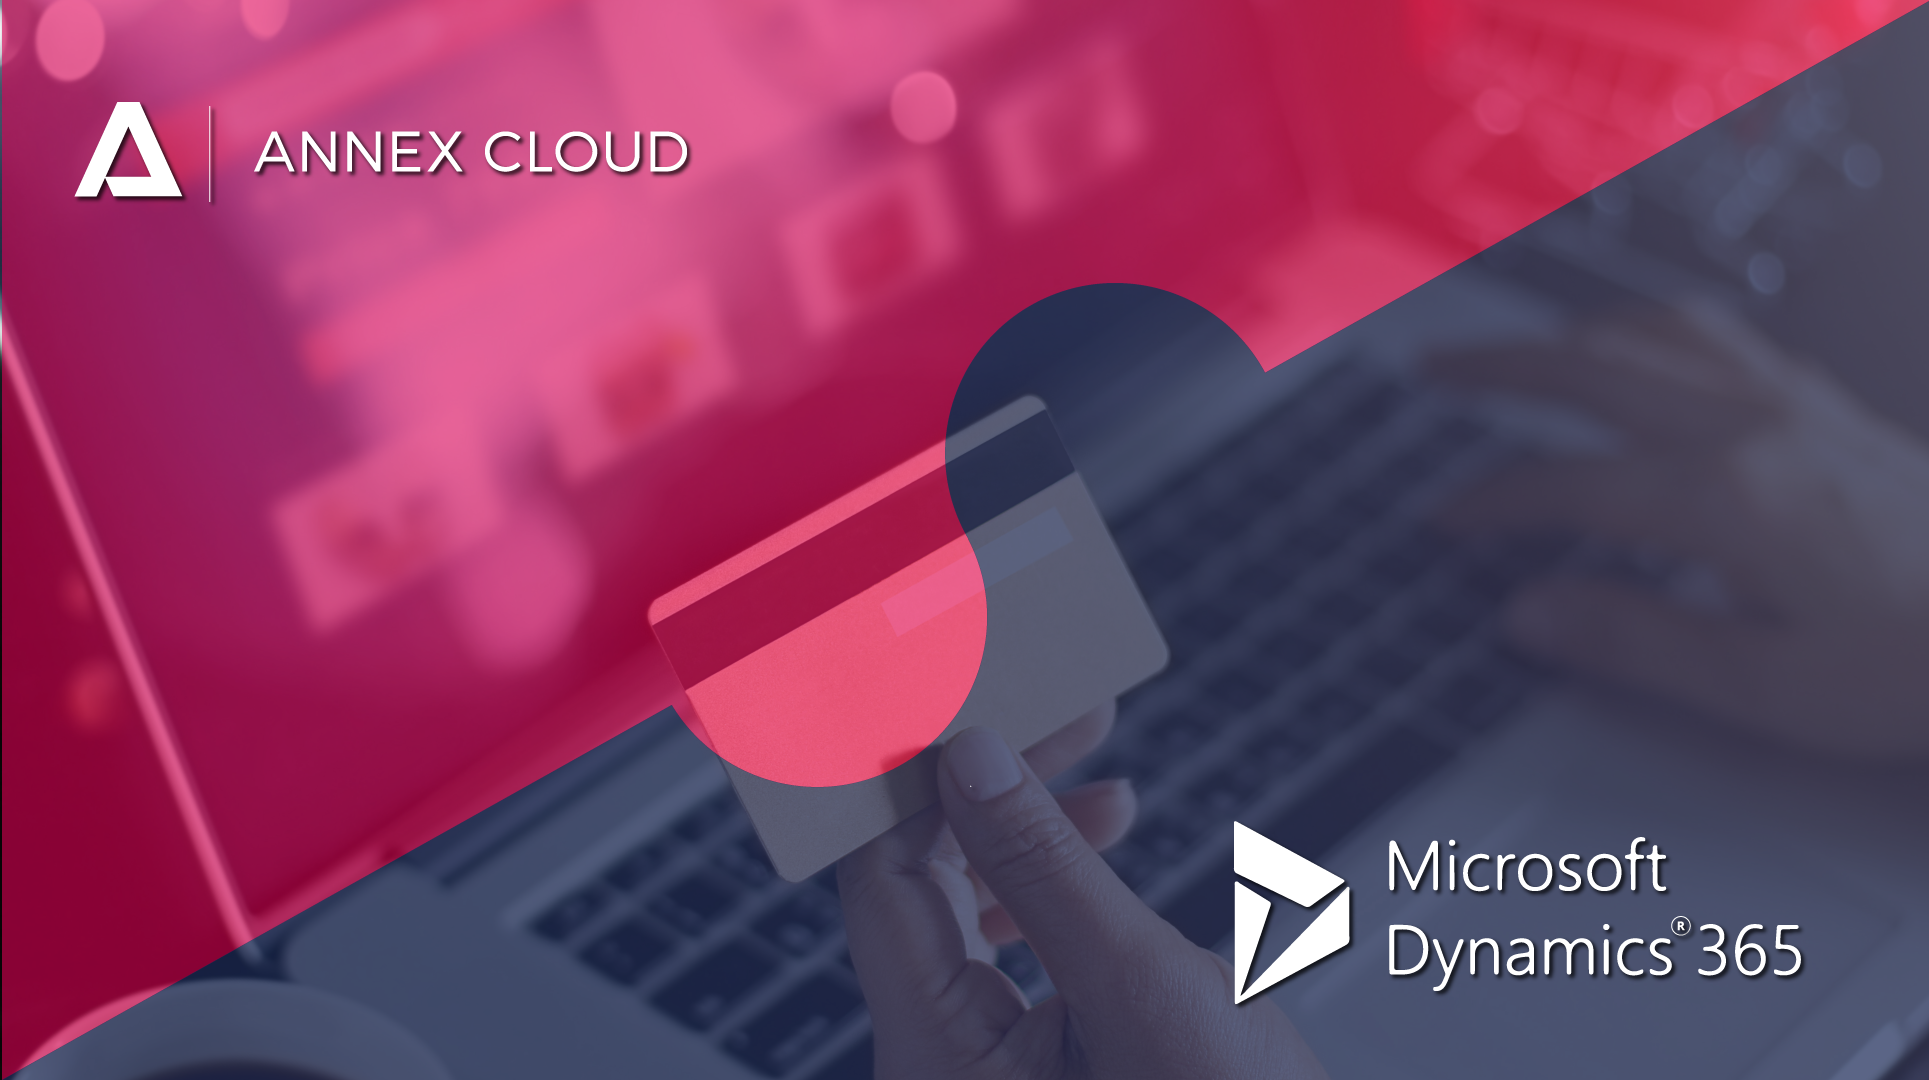 Leading customer loyalty and experience solutions provider firm, Annex Cloud has announced its partnership with Microsoft